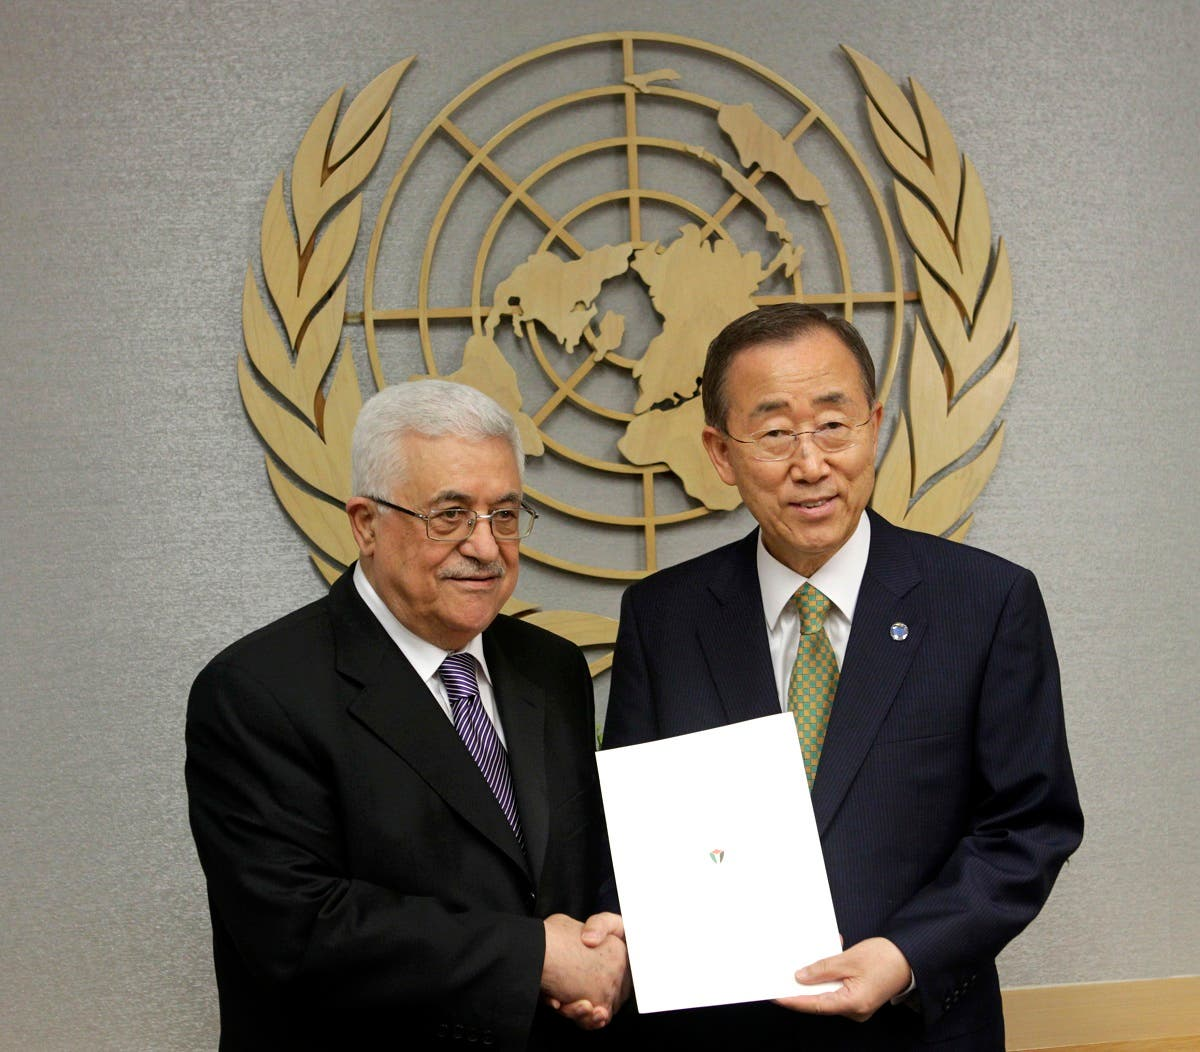 Palestinian President Mahmoud Abbas, left, poses for a picture with Secretary-General Ban Ki-moon after giving him a letter requesting recognition of Palestine as a state during the 66th session of the General Assembly at United Nations headquarters Friday, Sept. 23, 2011.